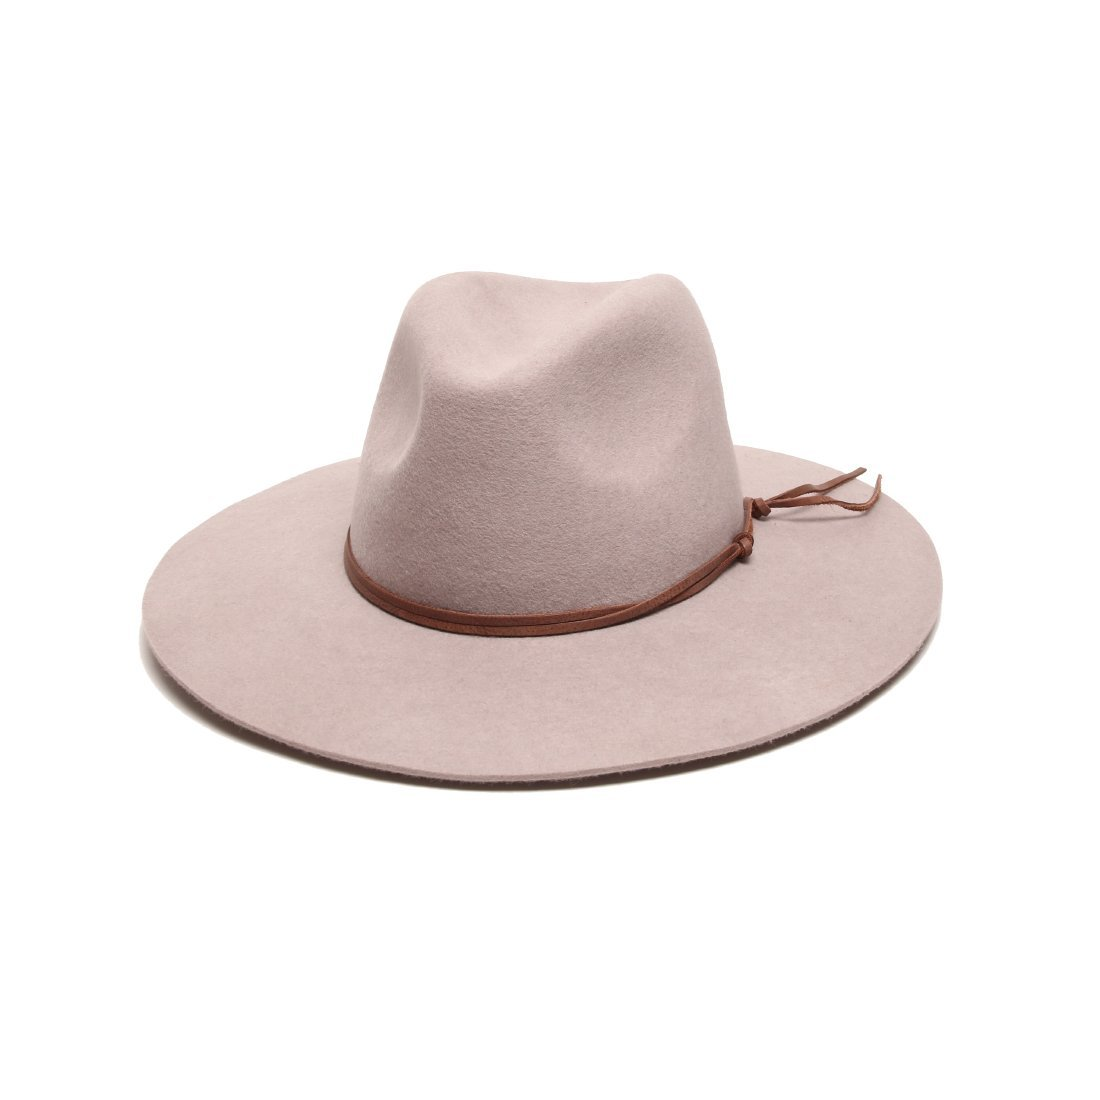 'ale by alessandra Women's Nirvana Felt Fedora With Leather Trim, Stone, One Size by ale by Alessandra